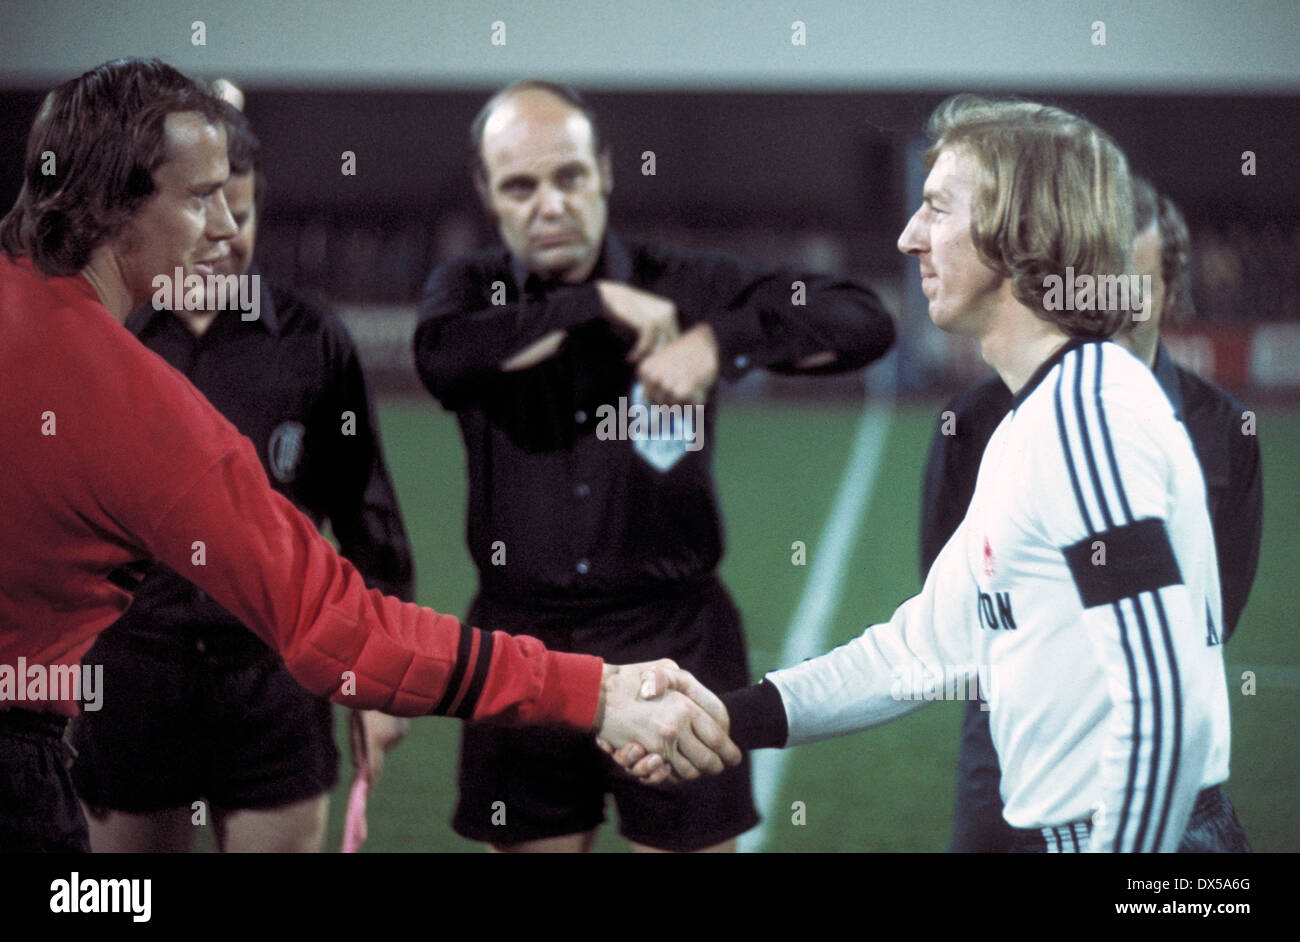 football, Bundesliga, 1974/1975, Stadium an der Castroper Strasse, VfL Bochum versus Eintracht Frankfurt 3:1, welcome by the team leaders keeper Werner Scholz (VfL) left and Juergen Grabowski (Eintracht), behind referee Klaus Ohmsen - Stock Image